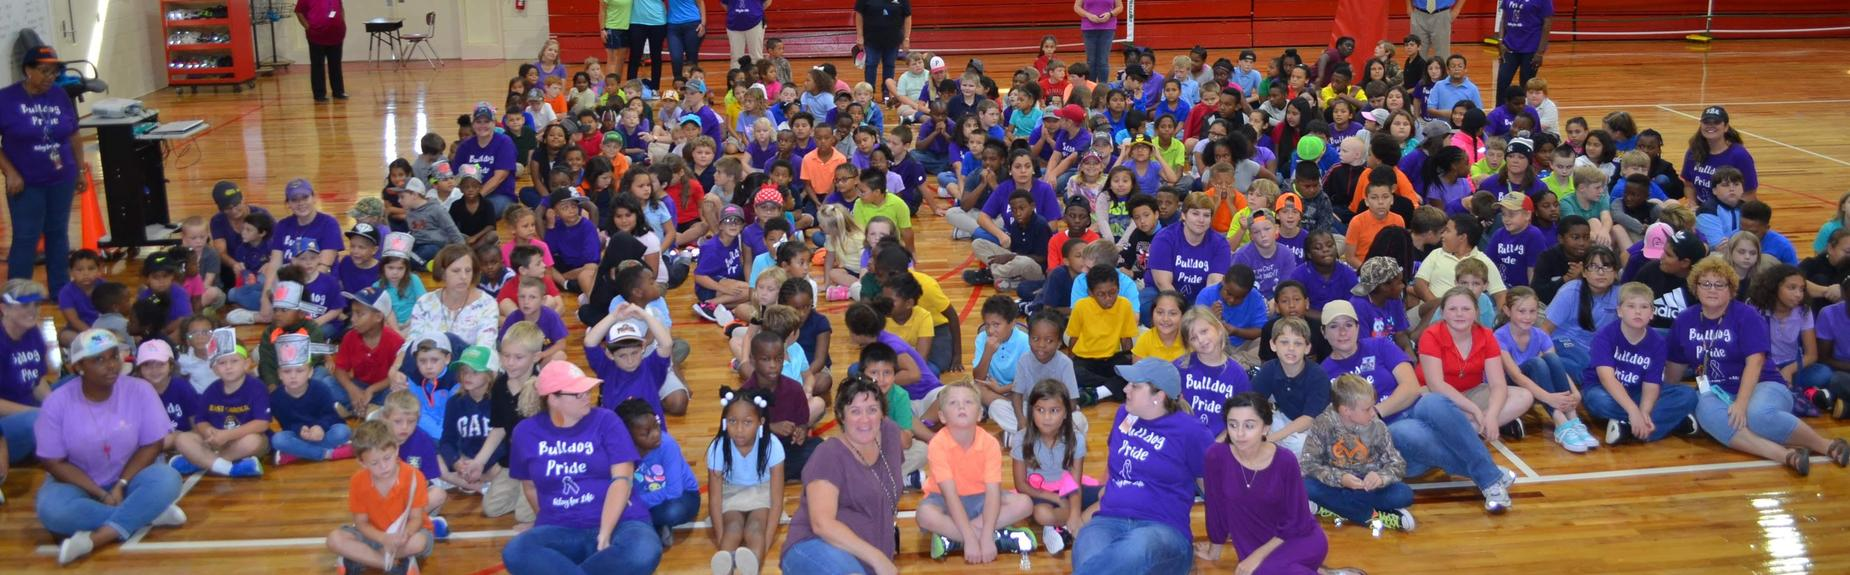 multiple classes of students sitting on floor in gym wearing purple shirts